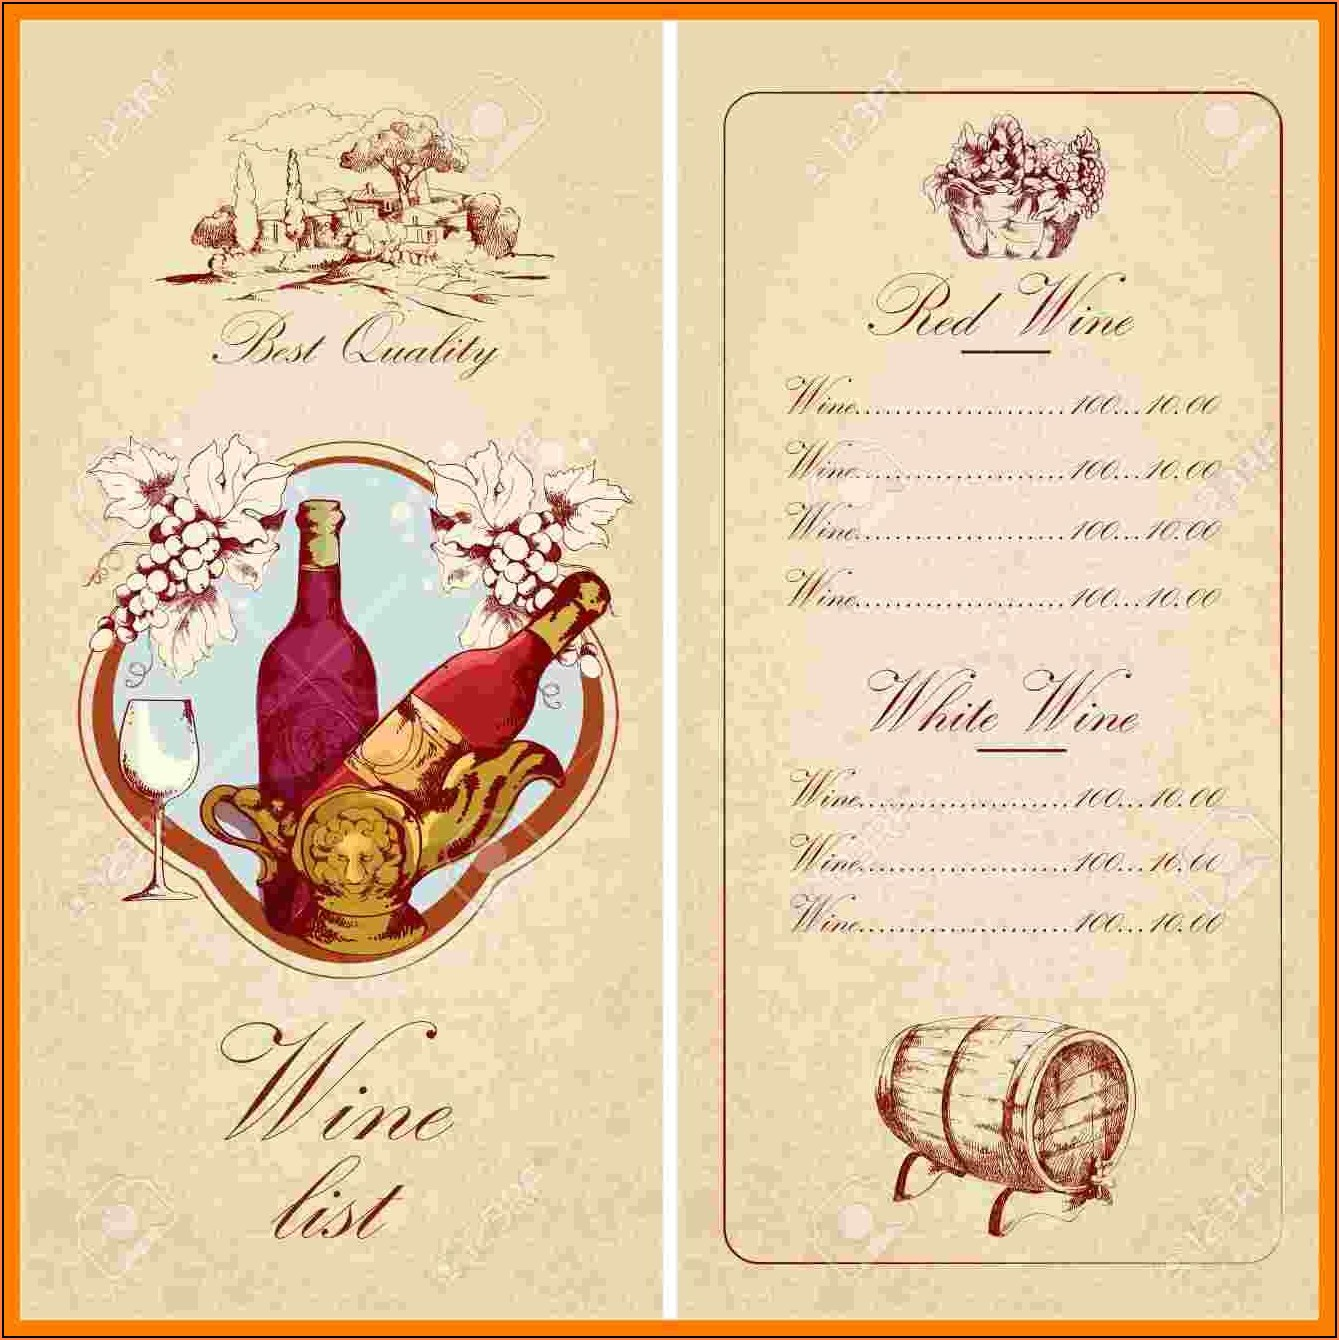 Wine List Menu Template Free